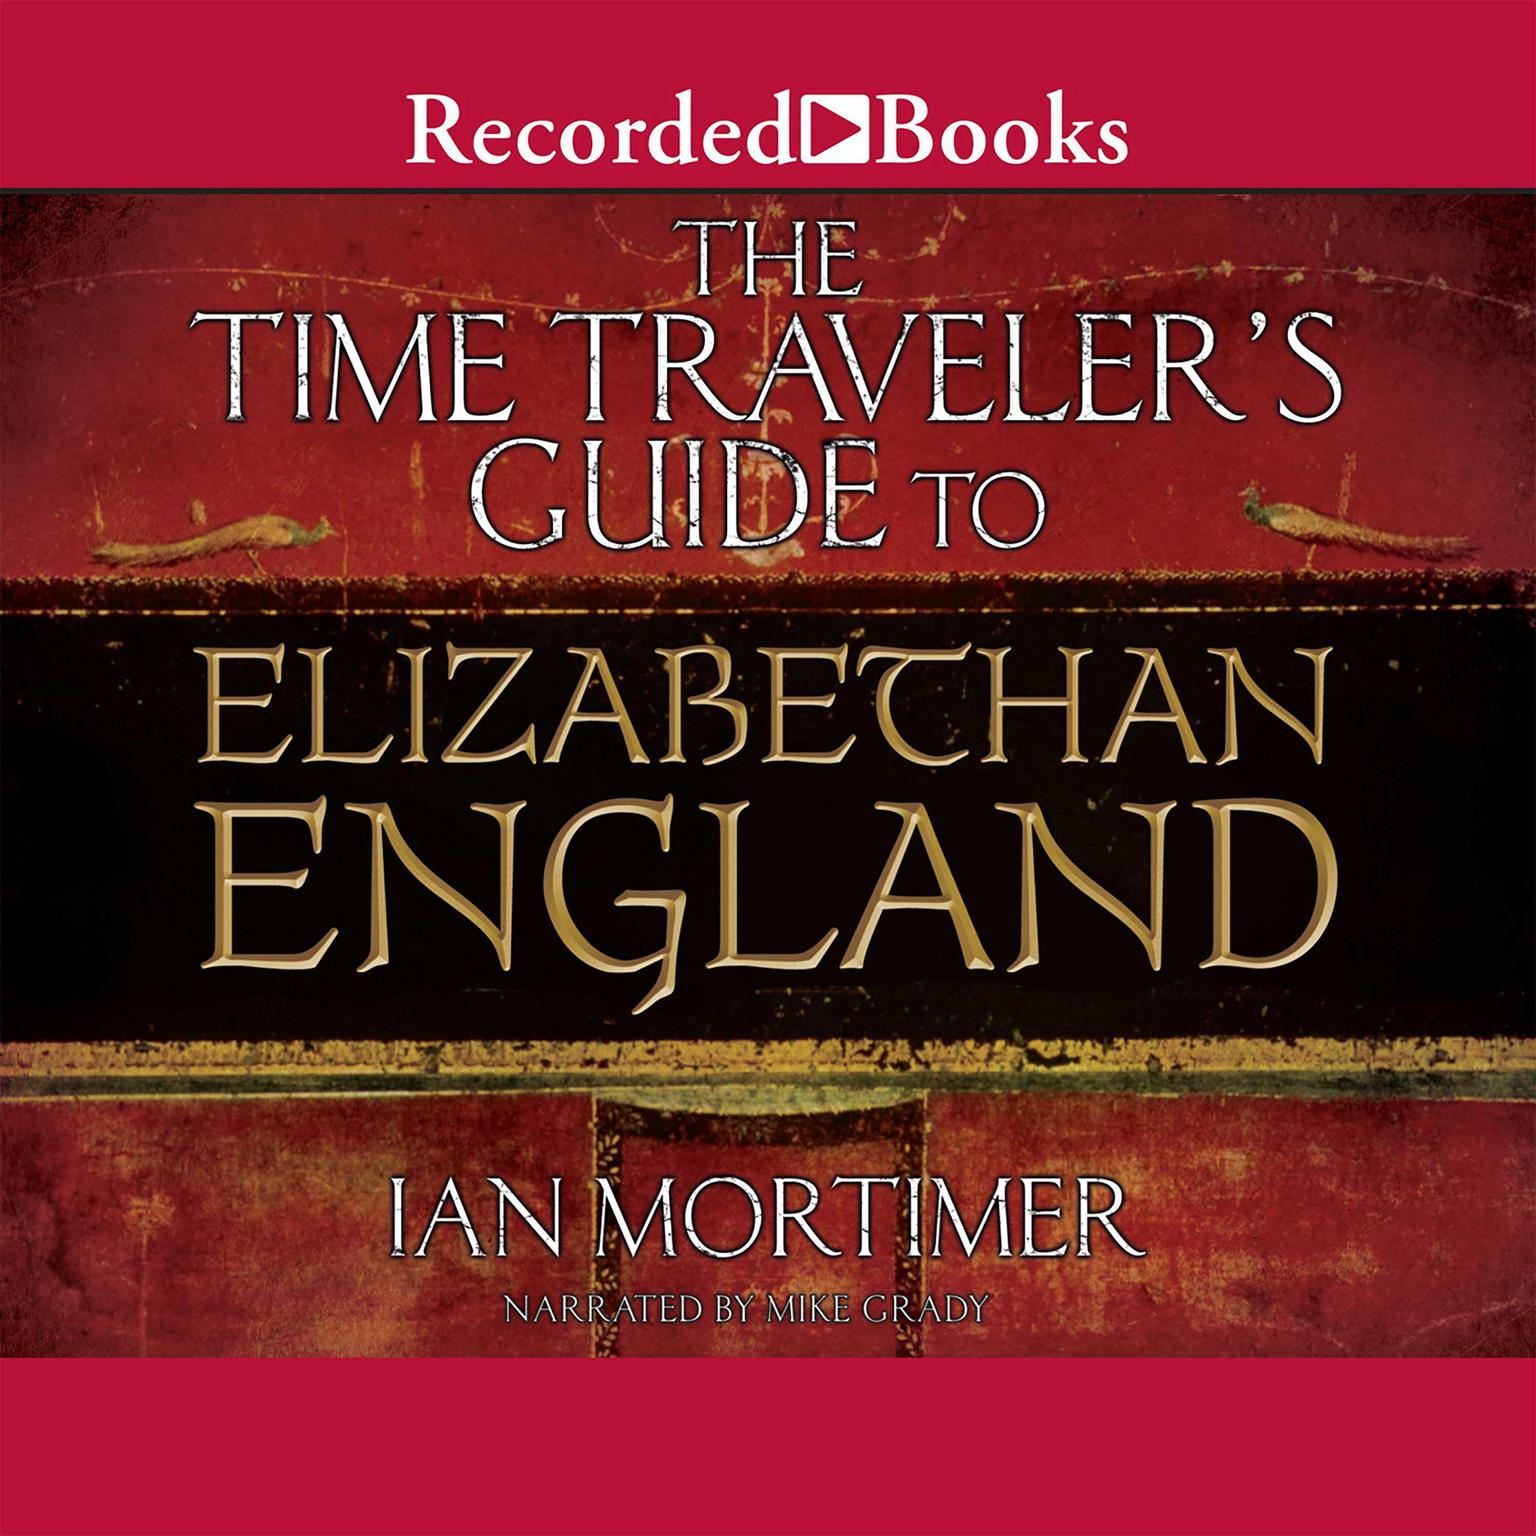 Printable The Time Traveler's Guide to Elizabethan England Audiobook Cover Art